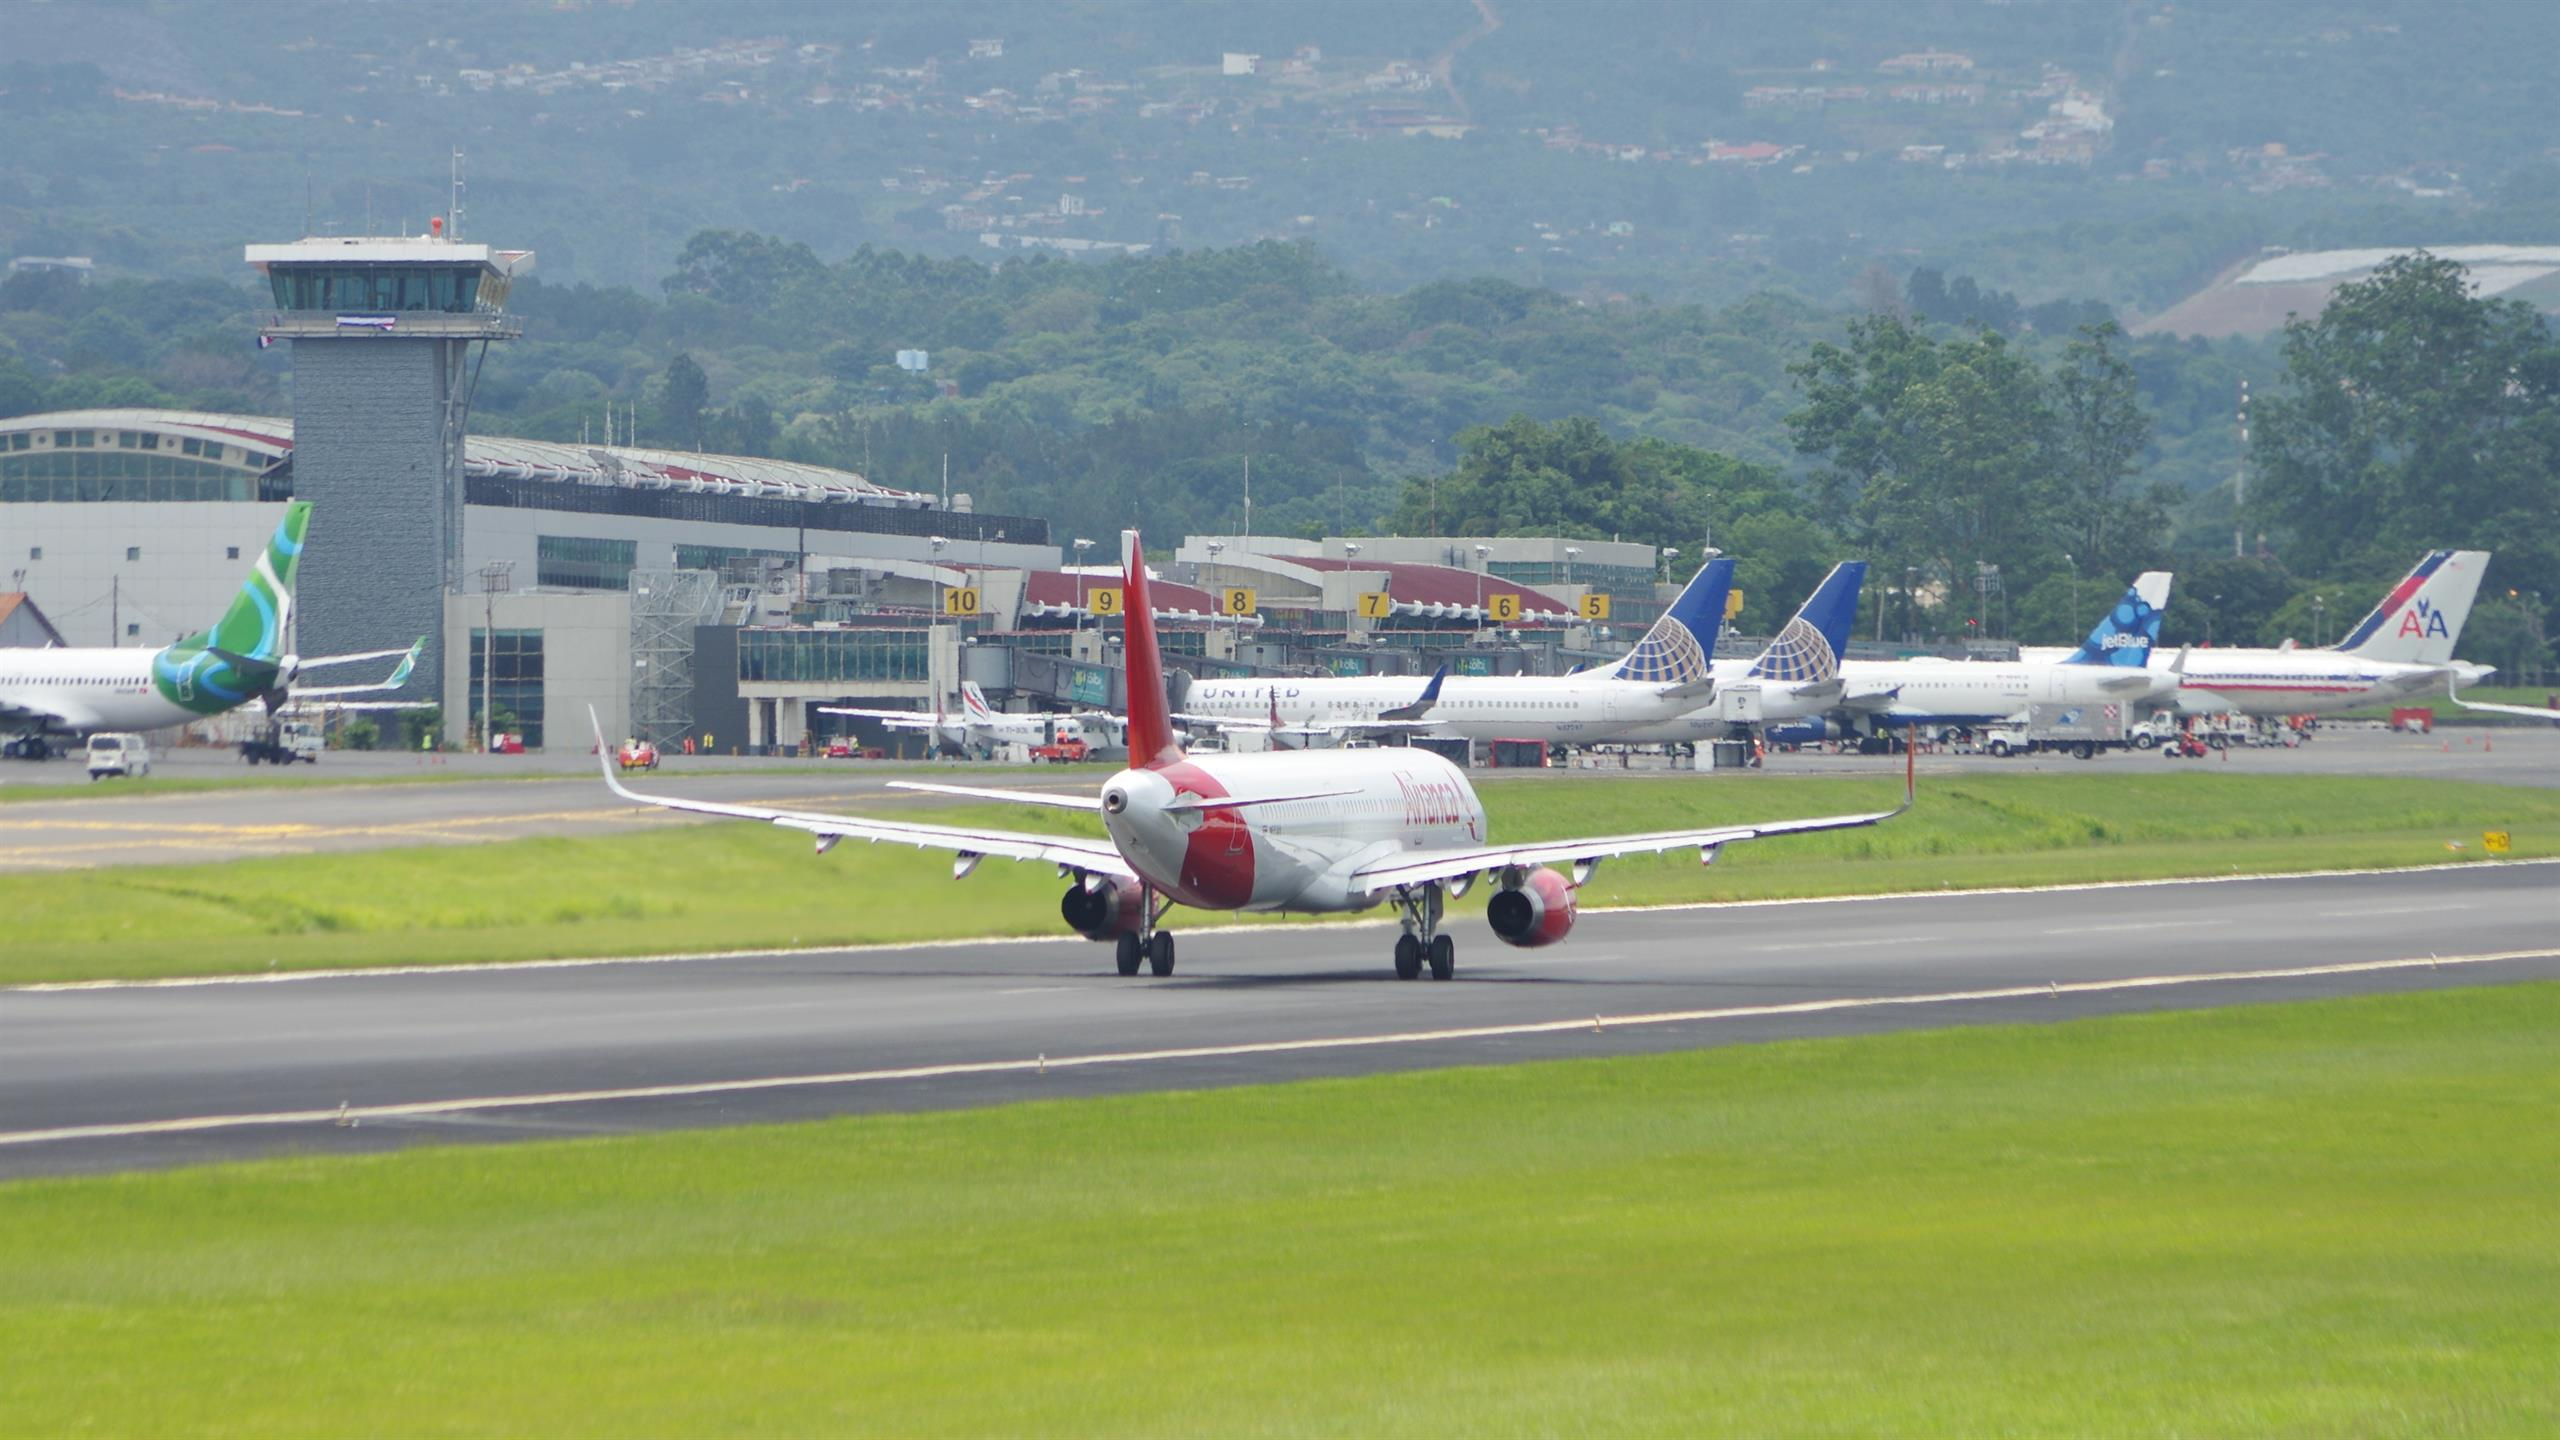 Plane on the airport runway in Costa Rica